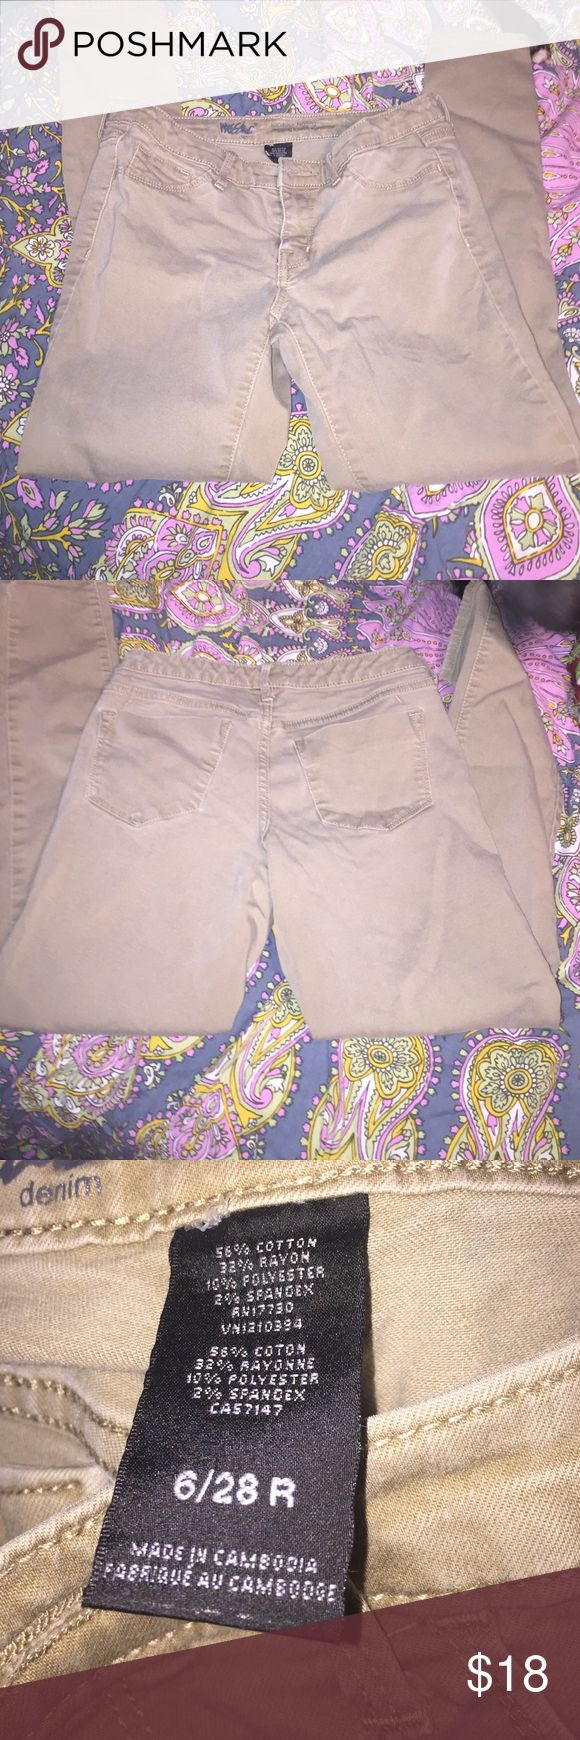 khakis skinny jeans they are a little darker in person than on the pic but perfect condition no problems they are 6/28 R they do stretch so they're not skin tight Pants Skinny